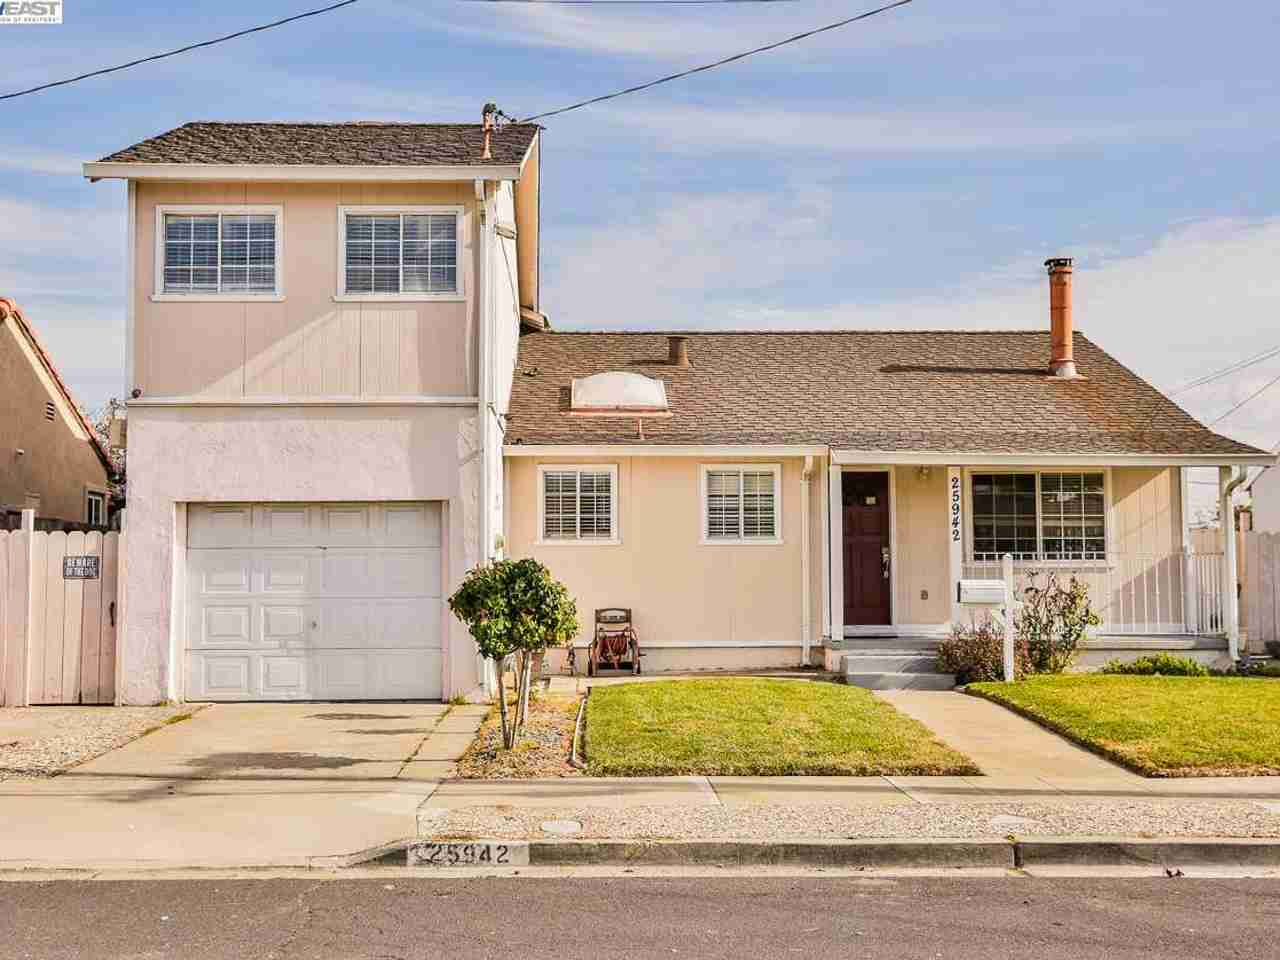 25942 Stanwood Ave Hayward, CA, 94544